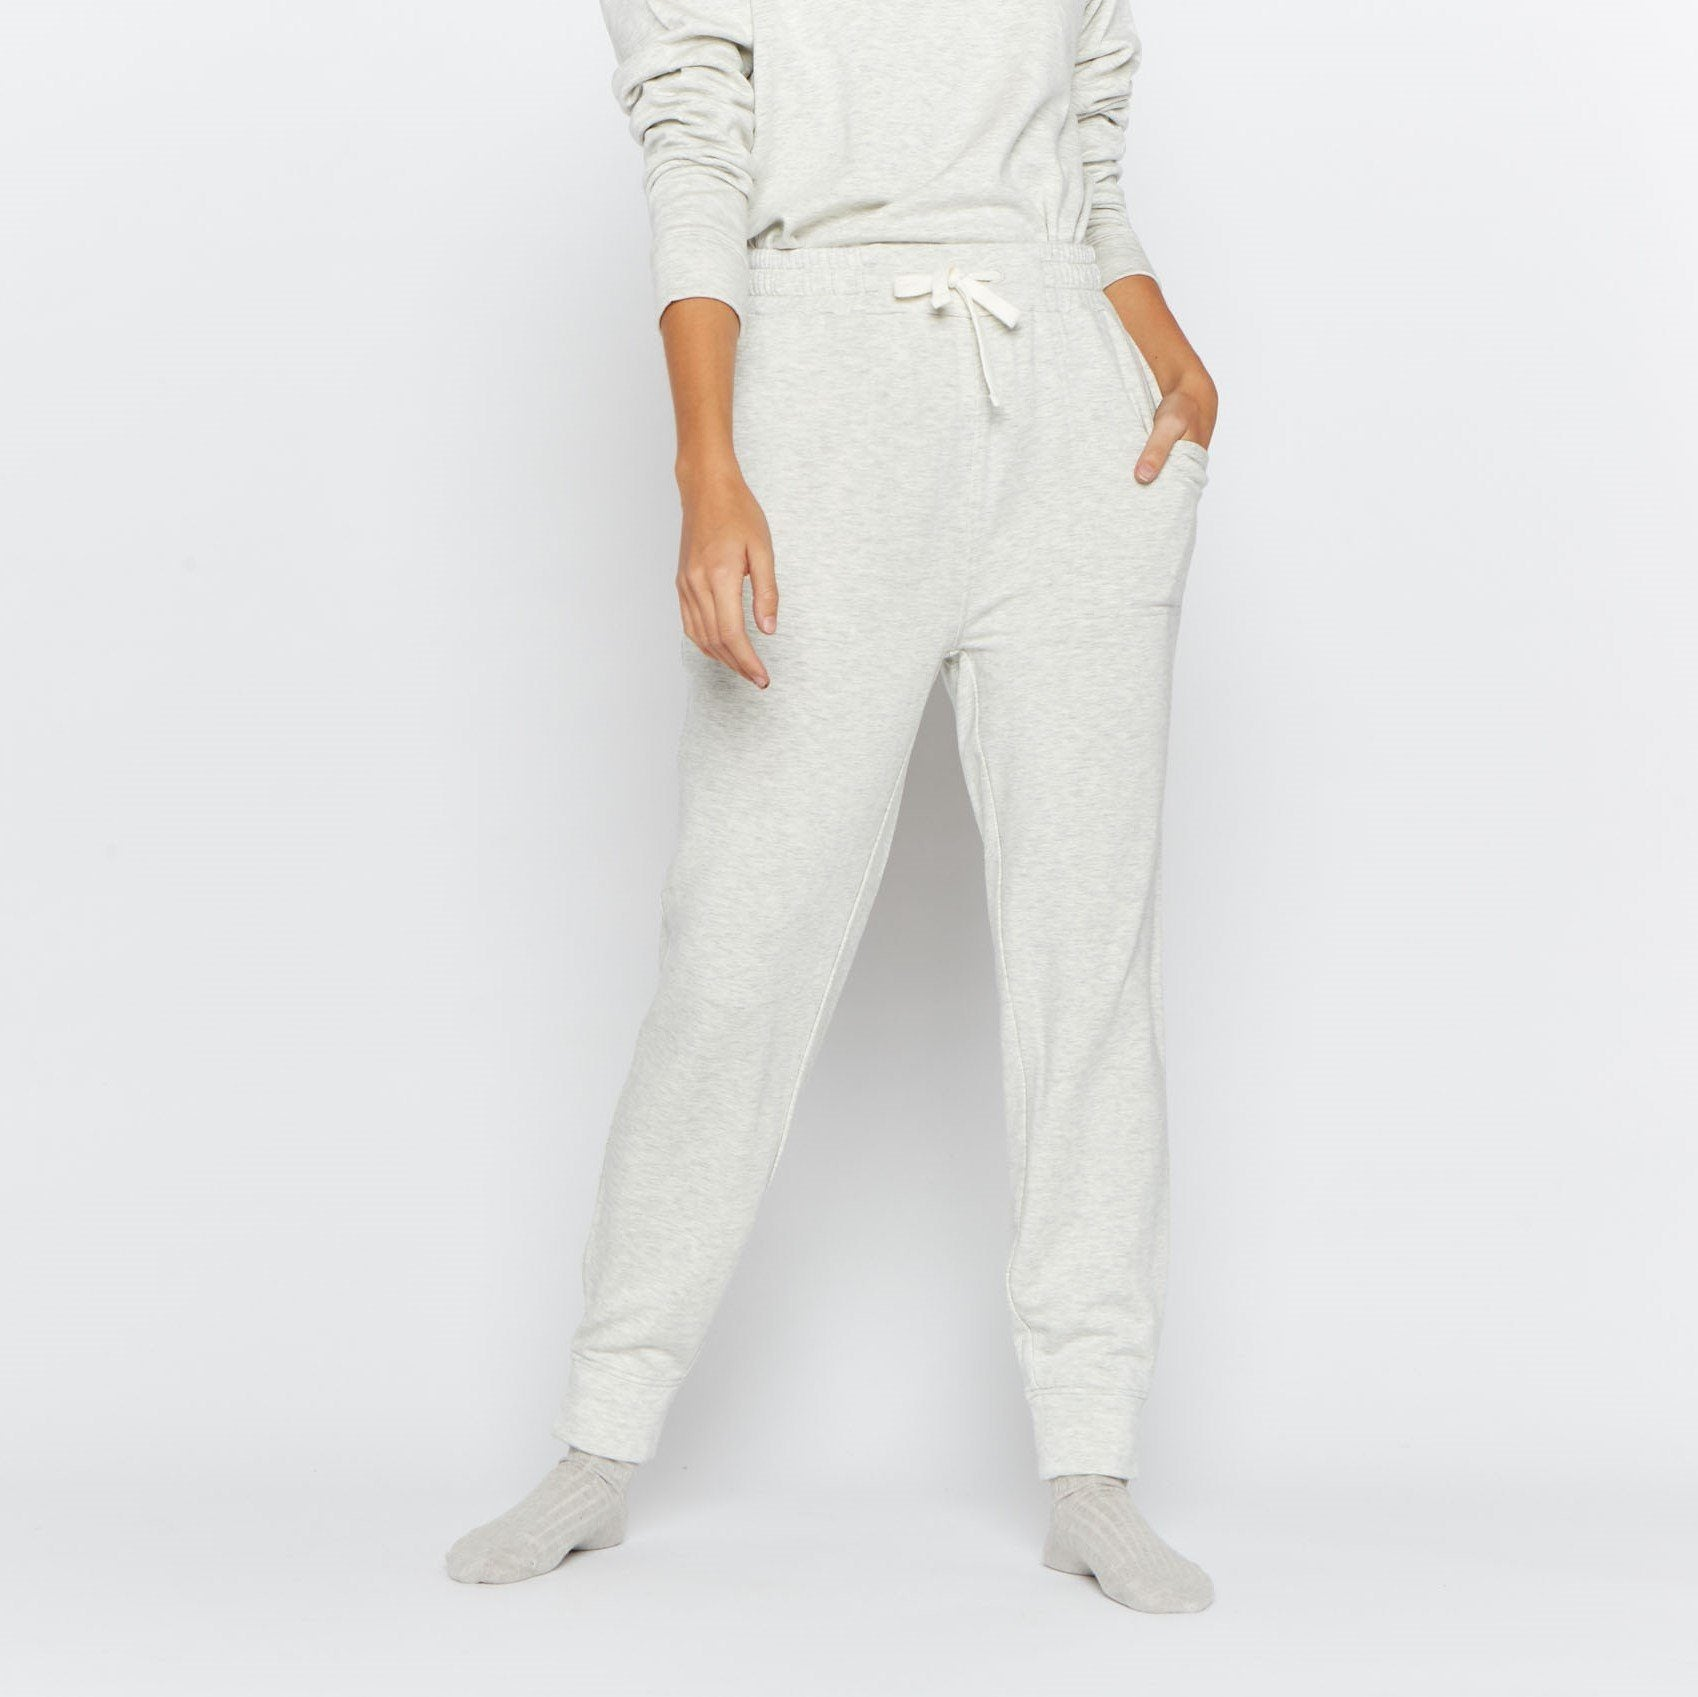 Sidecar Pants Thread & Supply Coco S